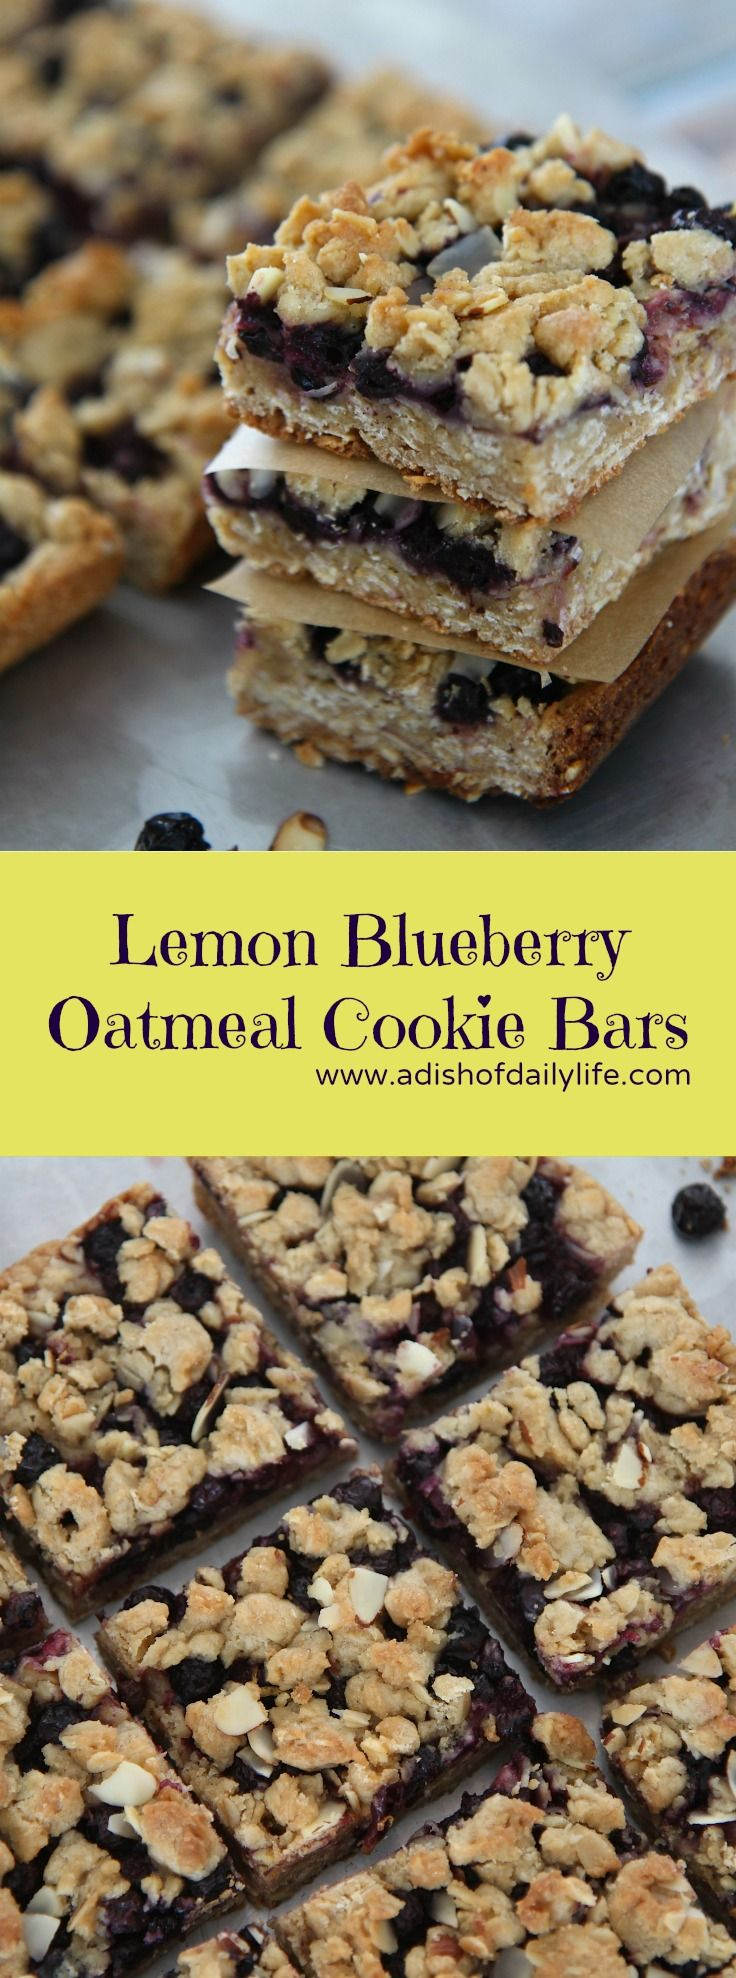 Lemon Blueberry Bars...easy cookie recipe and SO delicious! Perfect for parties, Easter, or after school snacking!